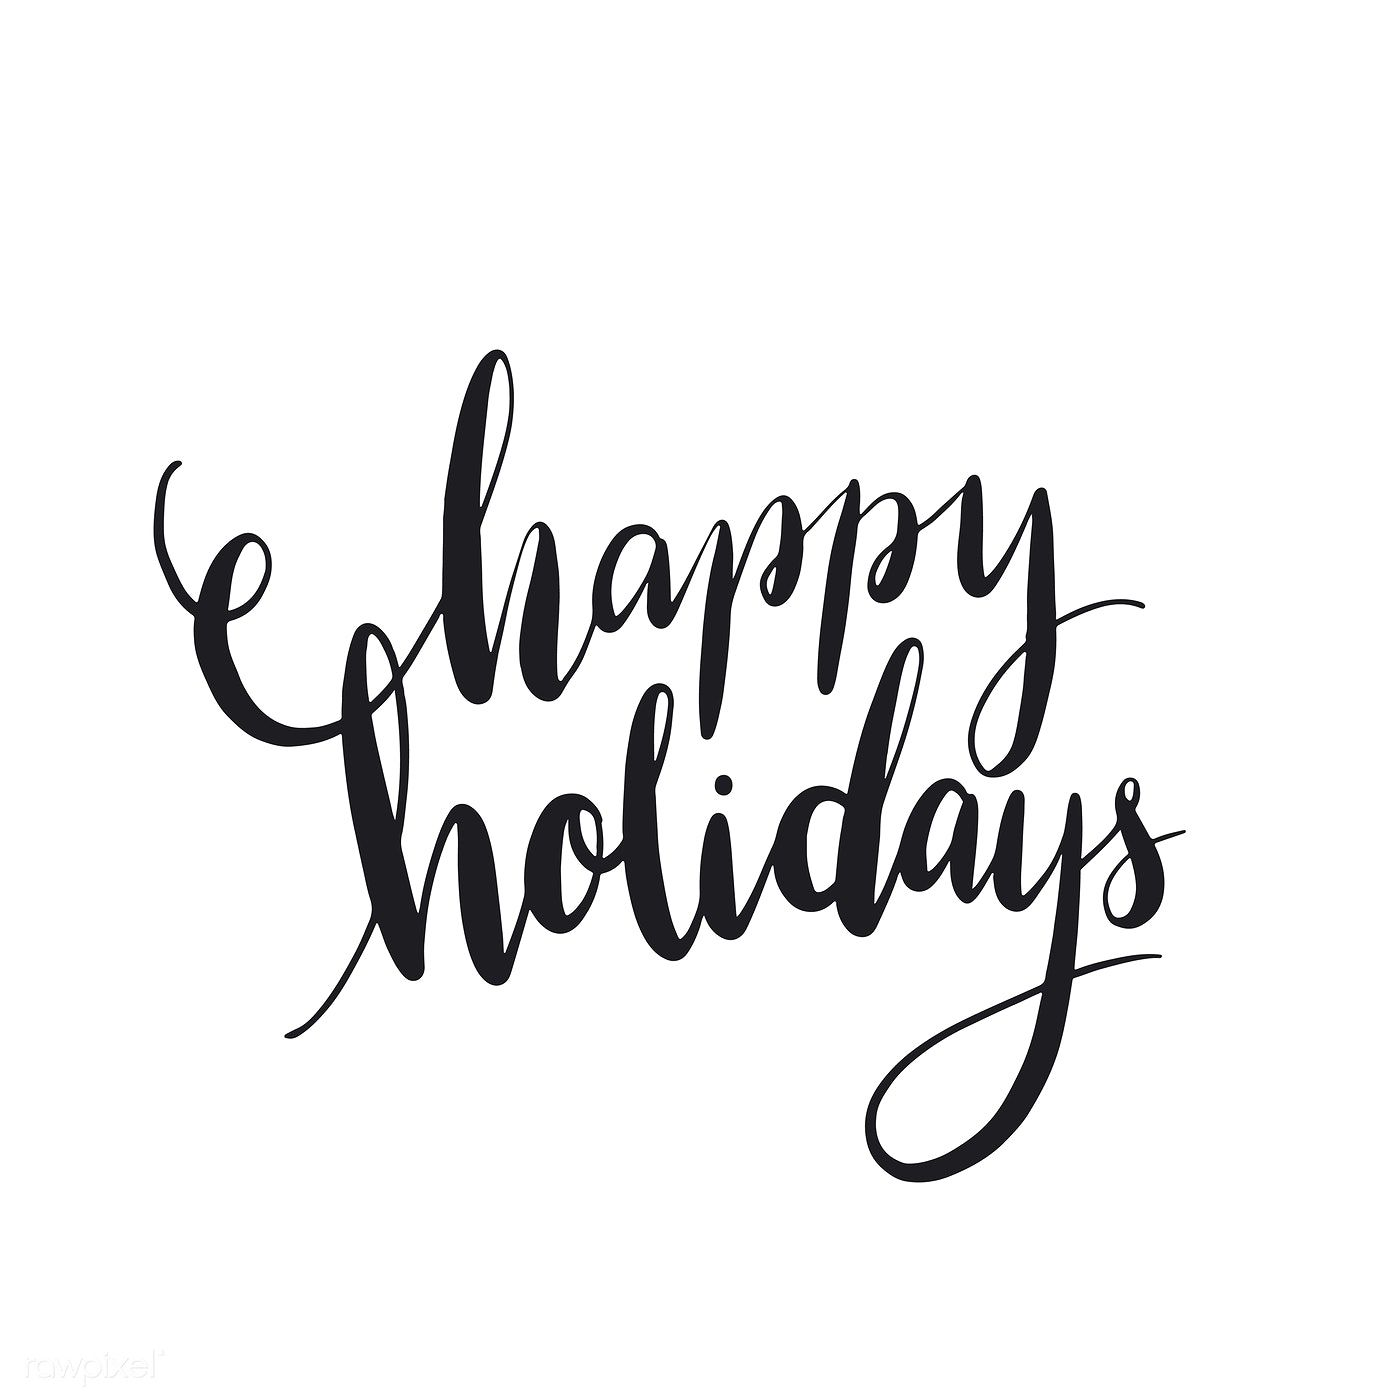 Happy Holidays Typography Style Vector Free Image By Rawpixel Com Happy Holidays Quotes Christmas Happy Holidays Quotes Holiday Calligraphy